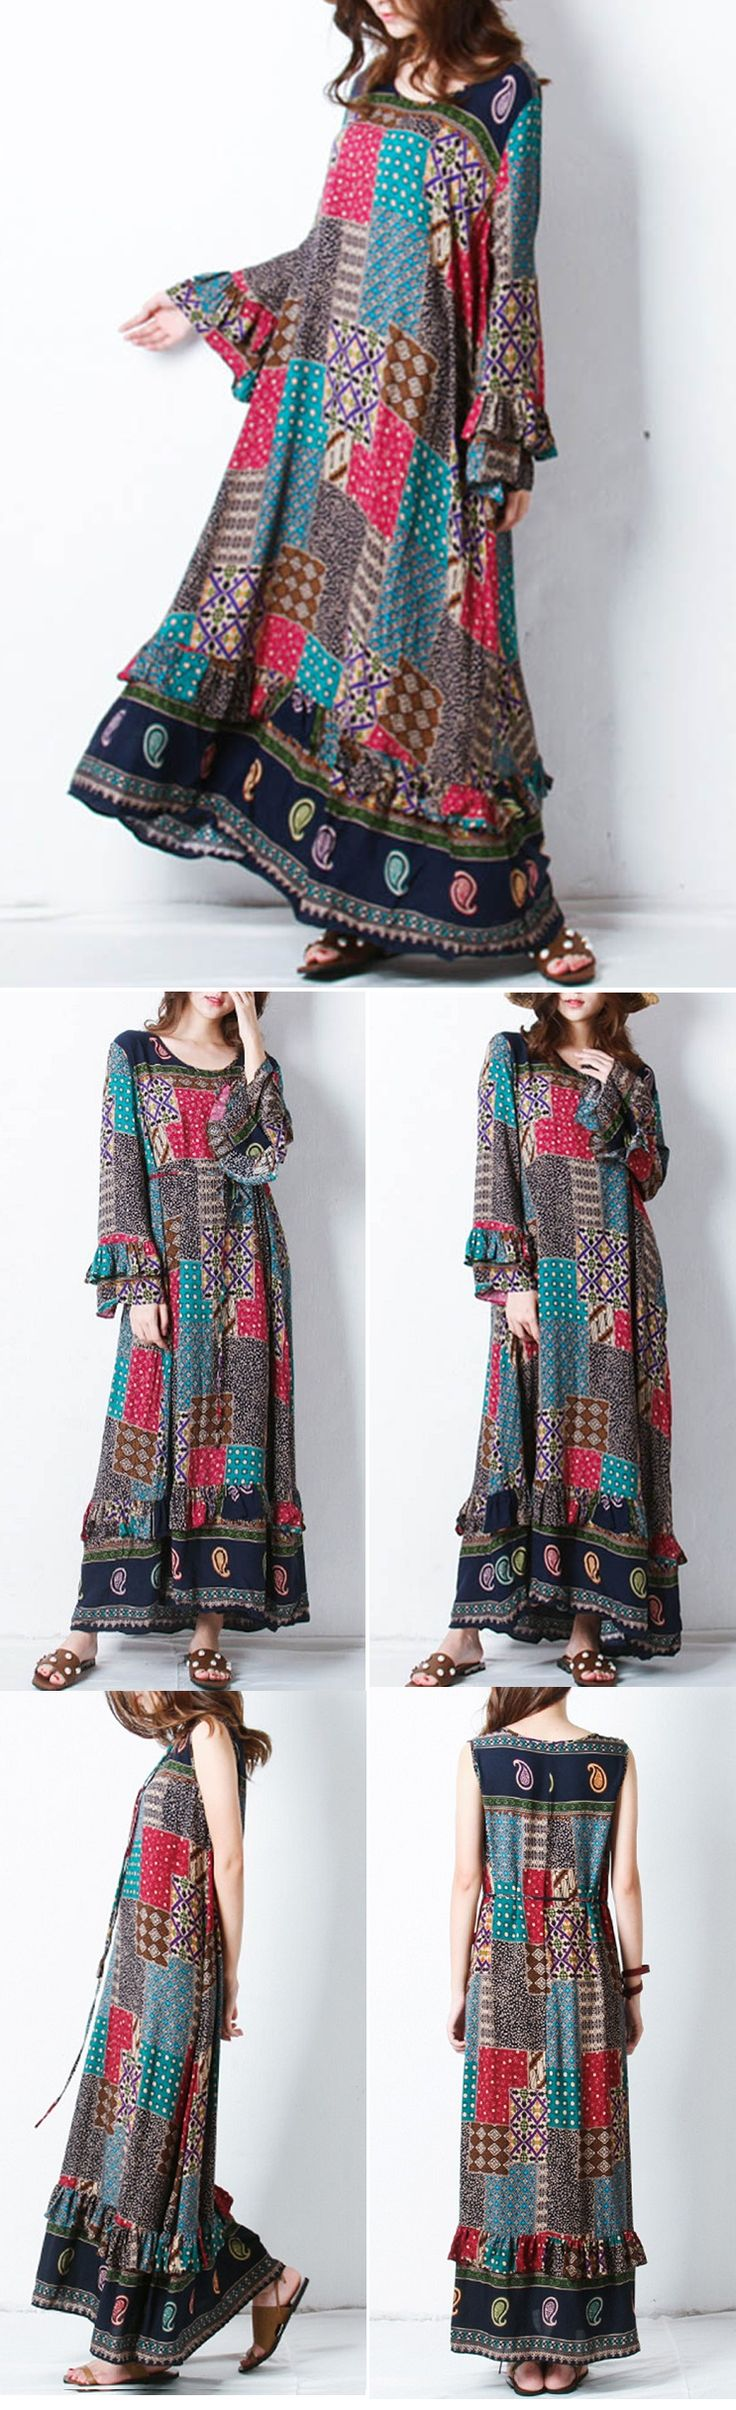 48% OFF! US$24.00 Only Plus Size Women Bohemian Printed Long Sleeve Maxi Dresses SHOP NOW!!!